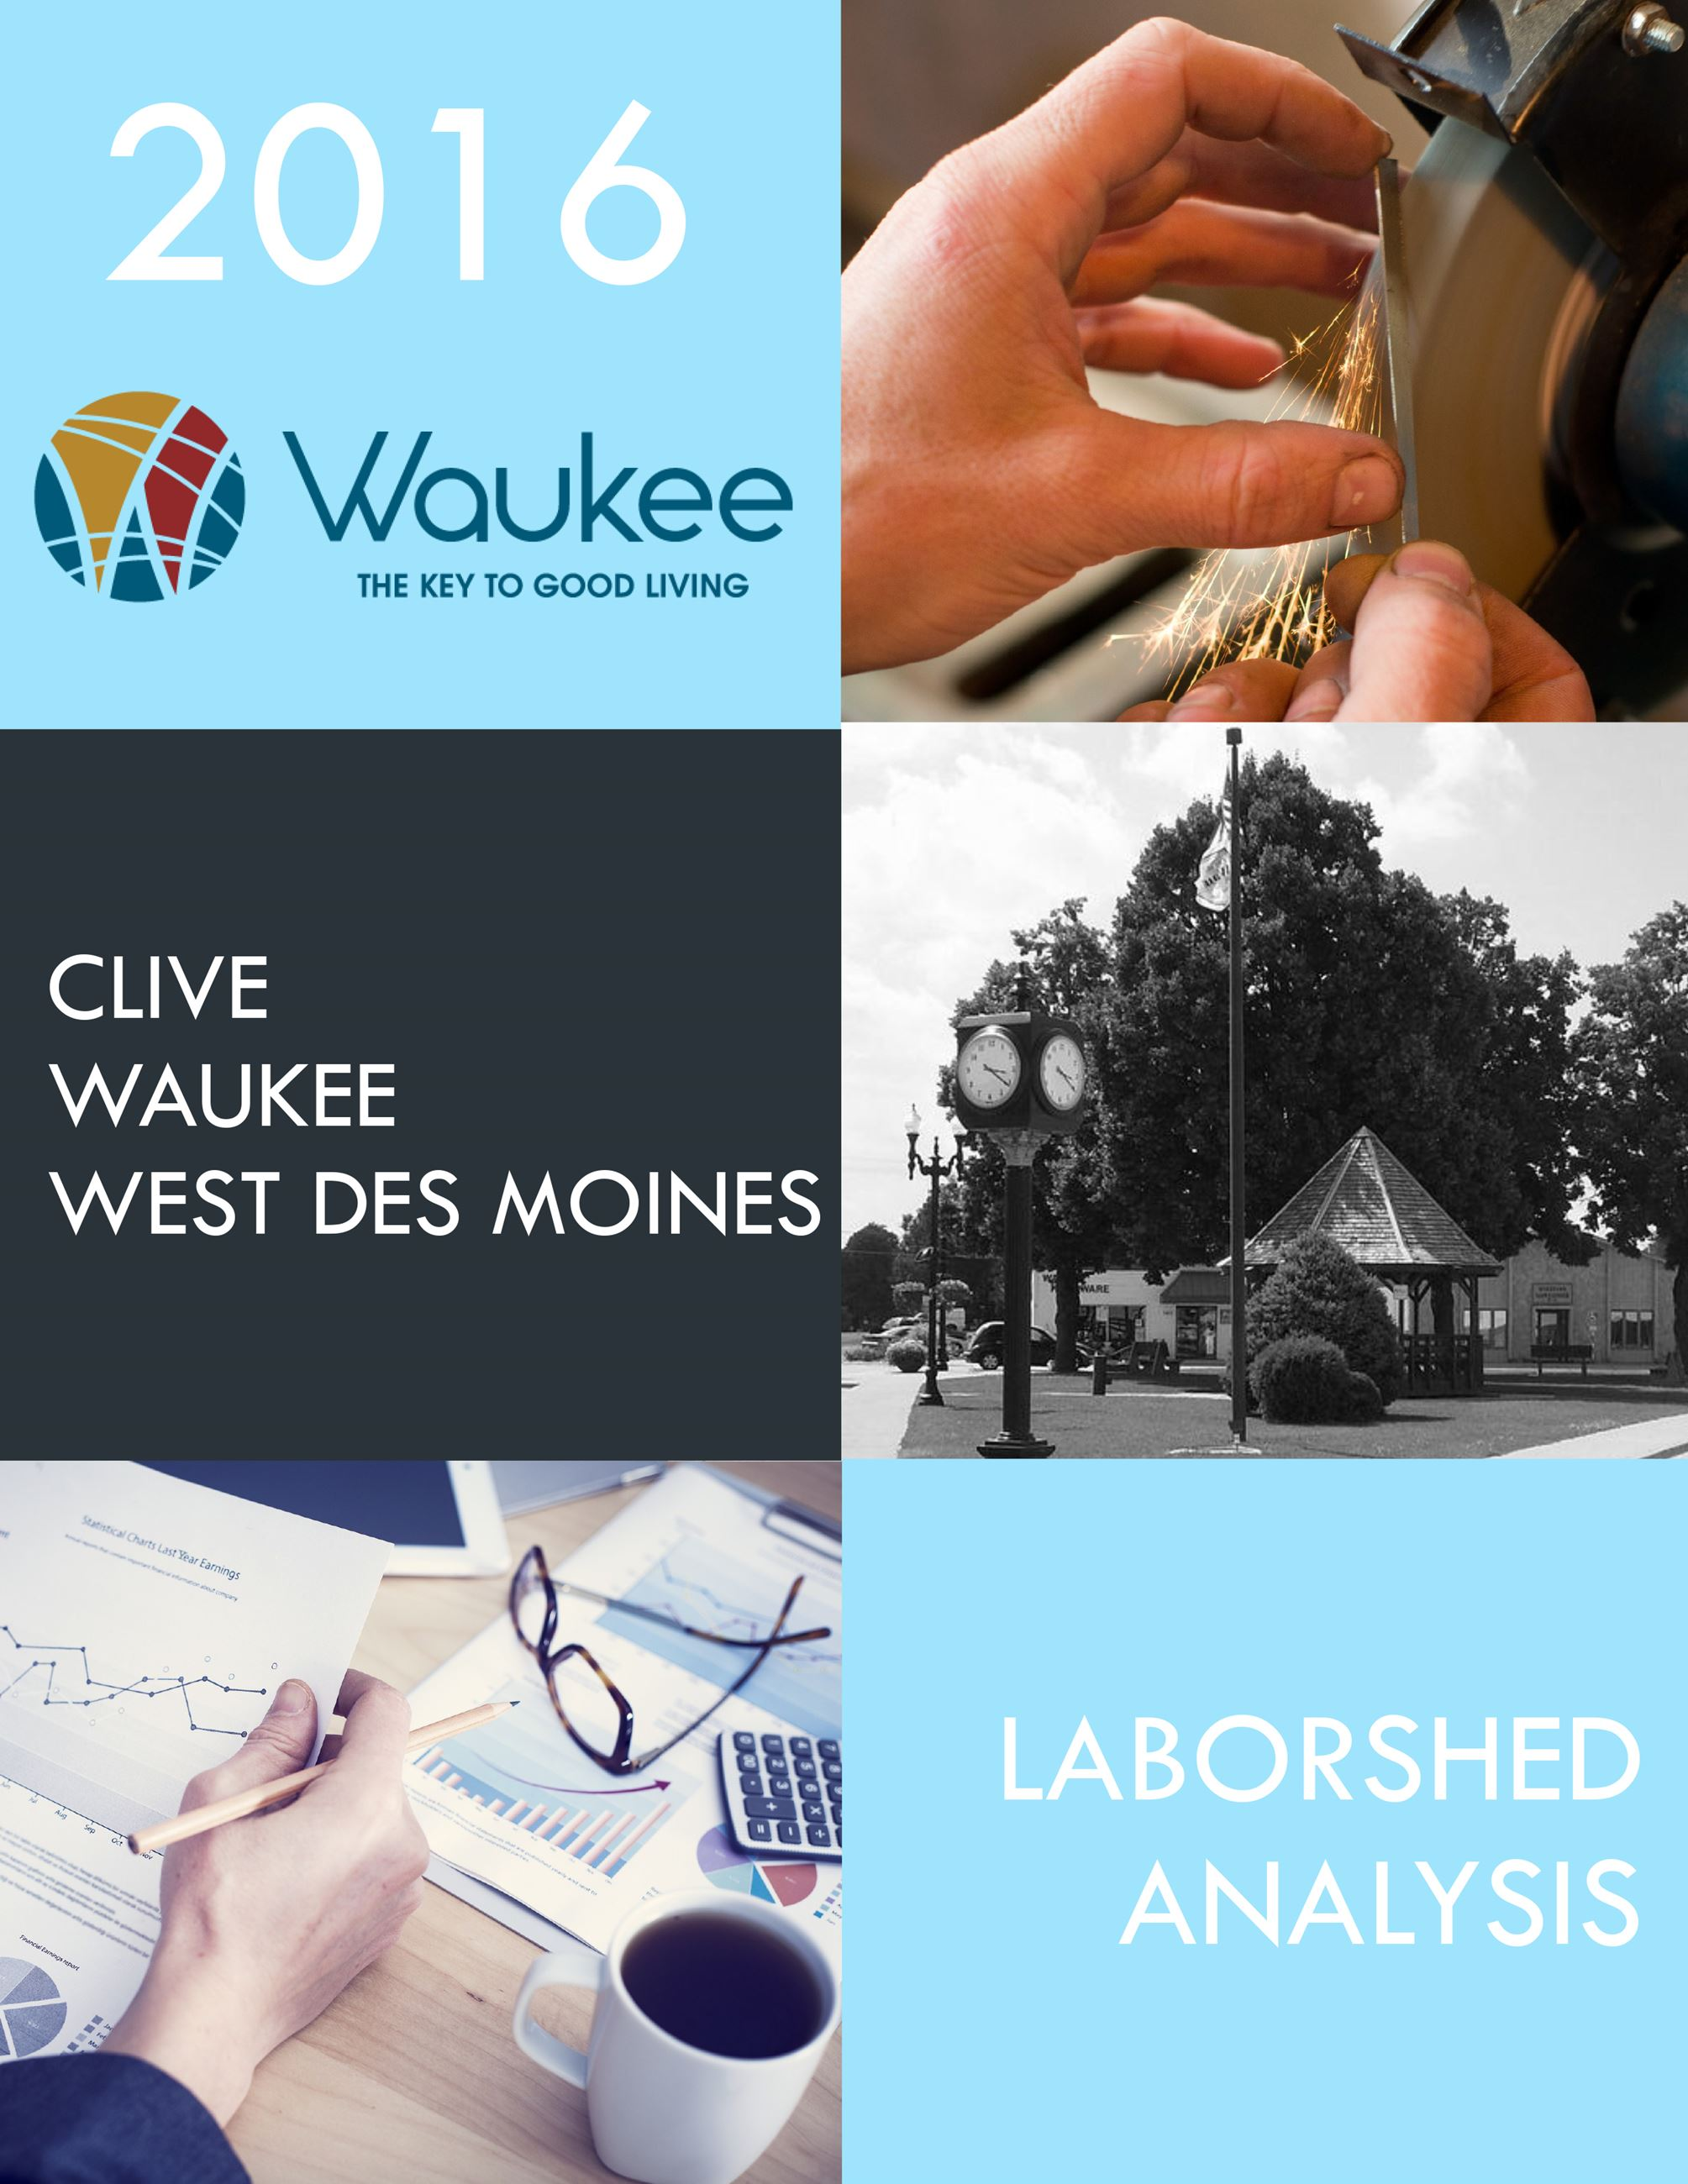 Clive, Waukee West Des Moines Laborshed Analysis